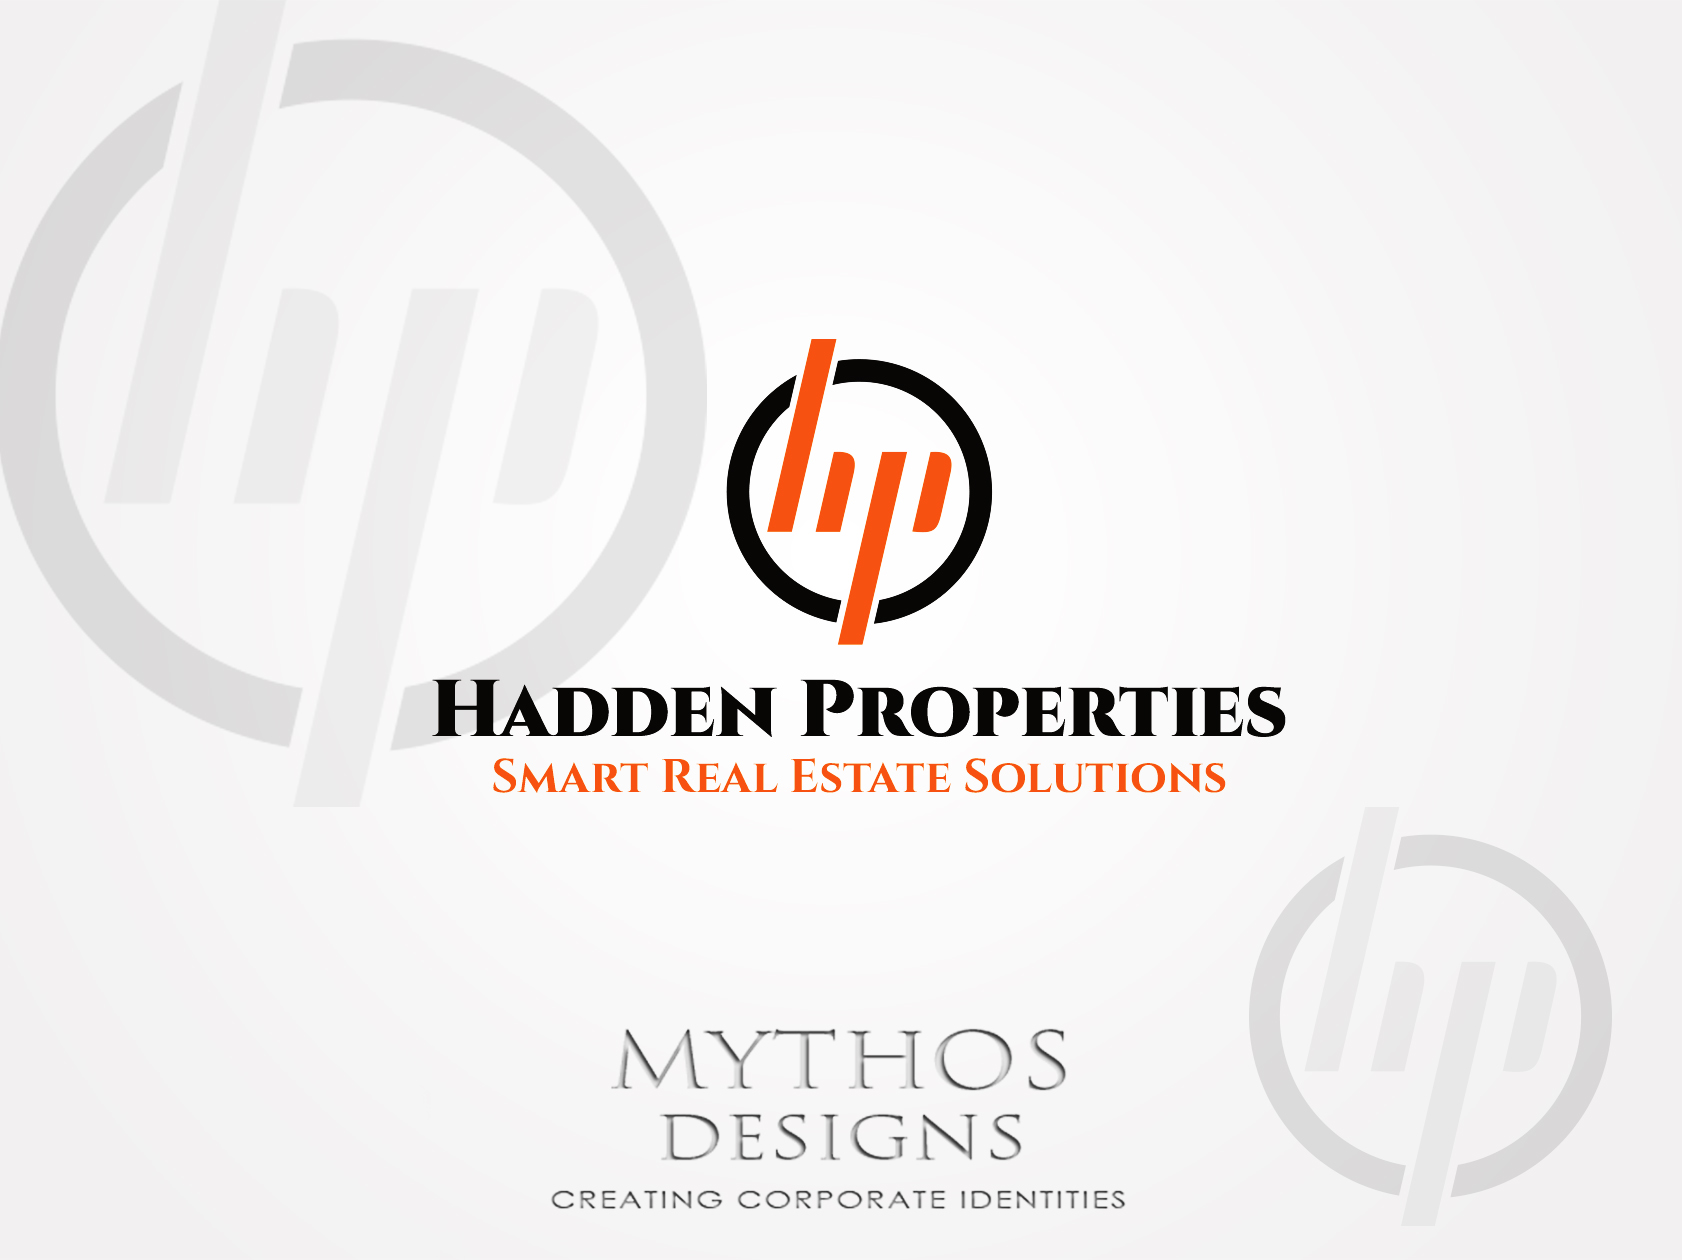 Logo Design by Mythos Designs - Entry No. 98 in the Logo Design Contest Artistic Logo Design for Hadden Properties.